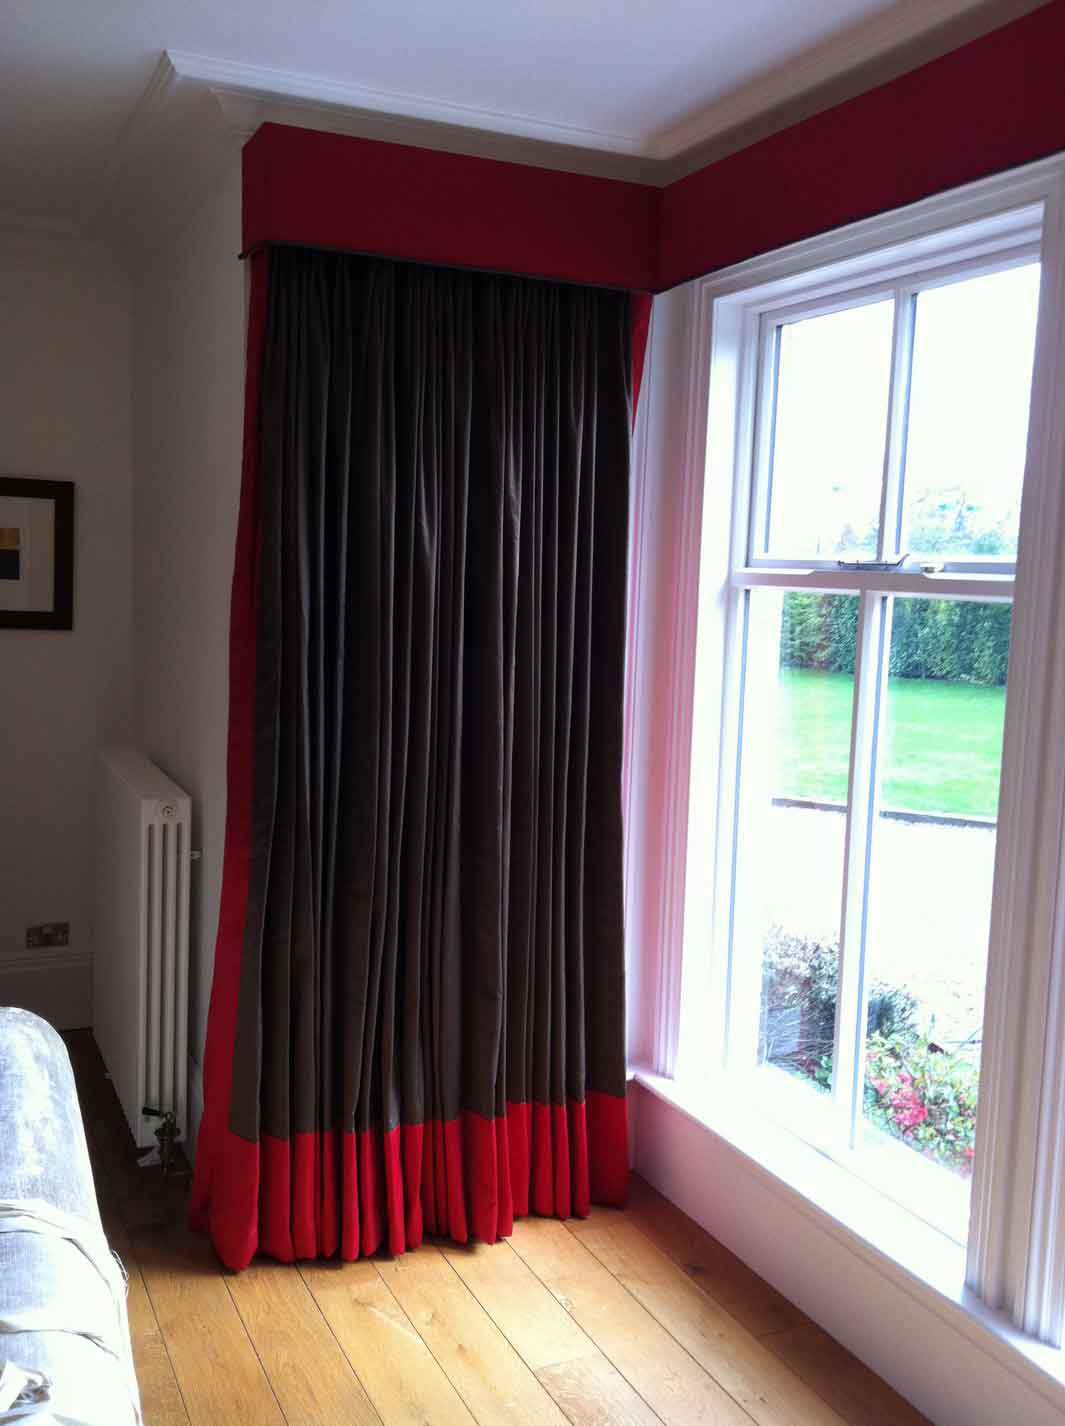 Elegant And Modern Black And Red Curtain For Corner Windows Wood Planks  Floor System Glass Window